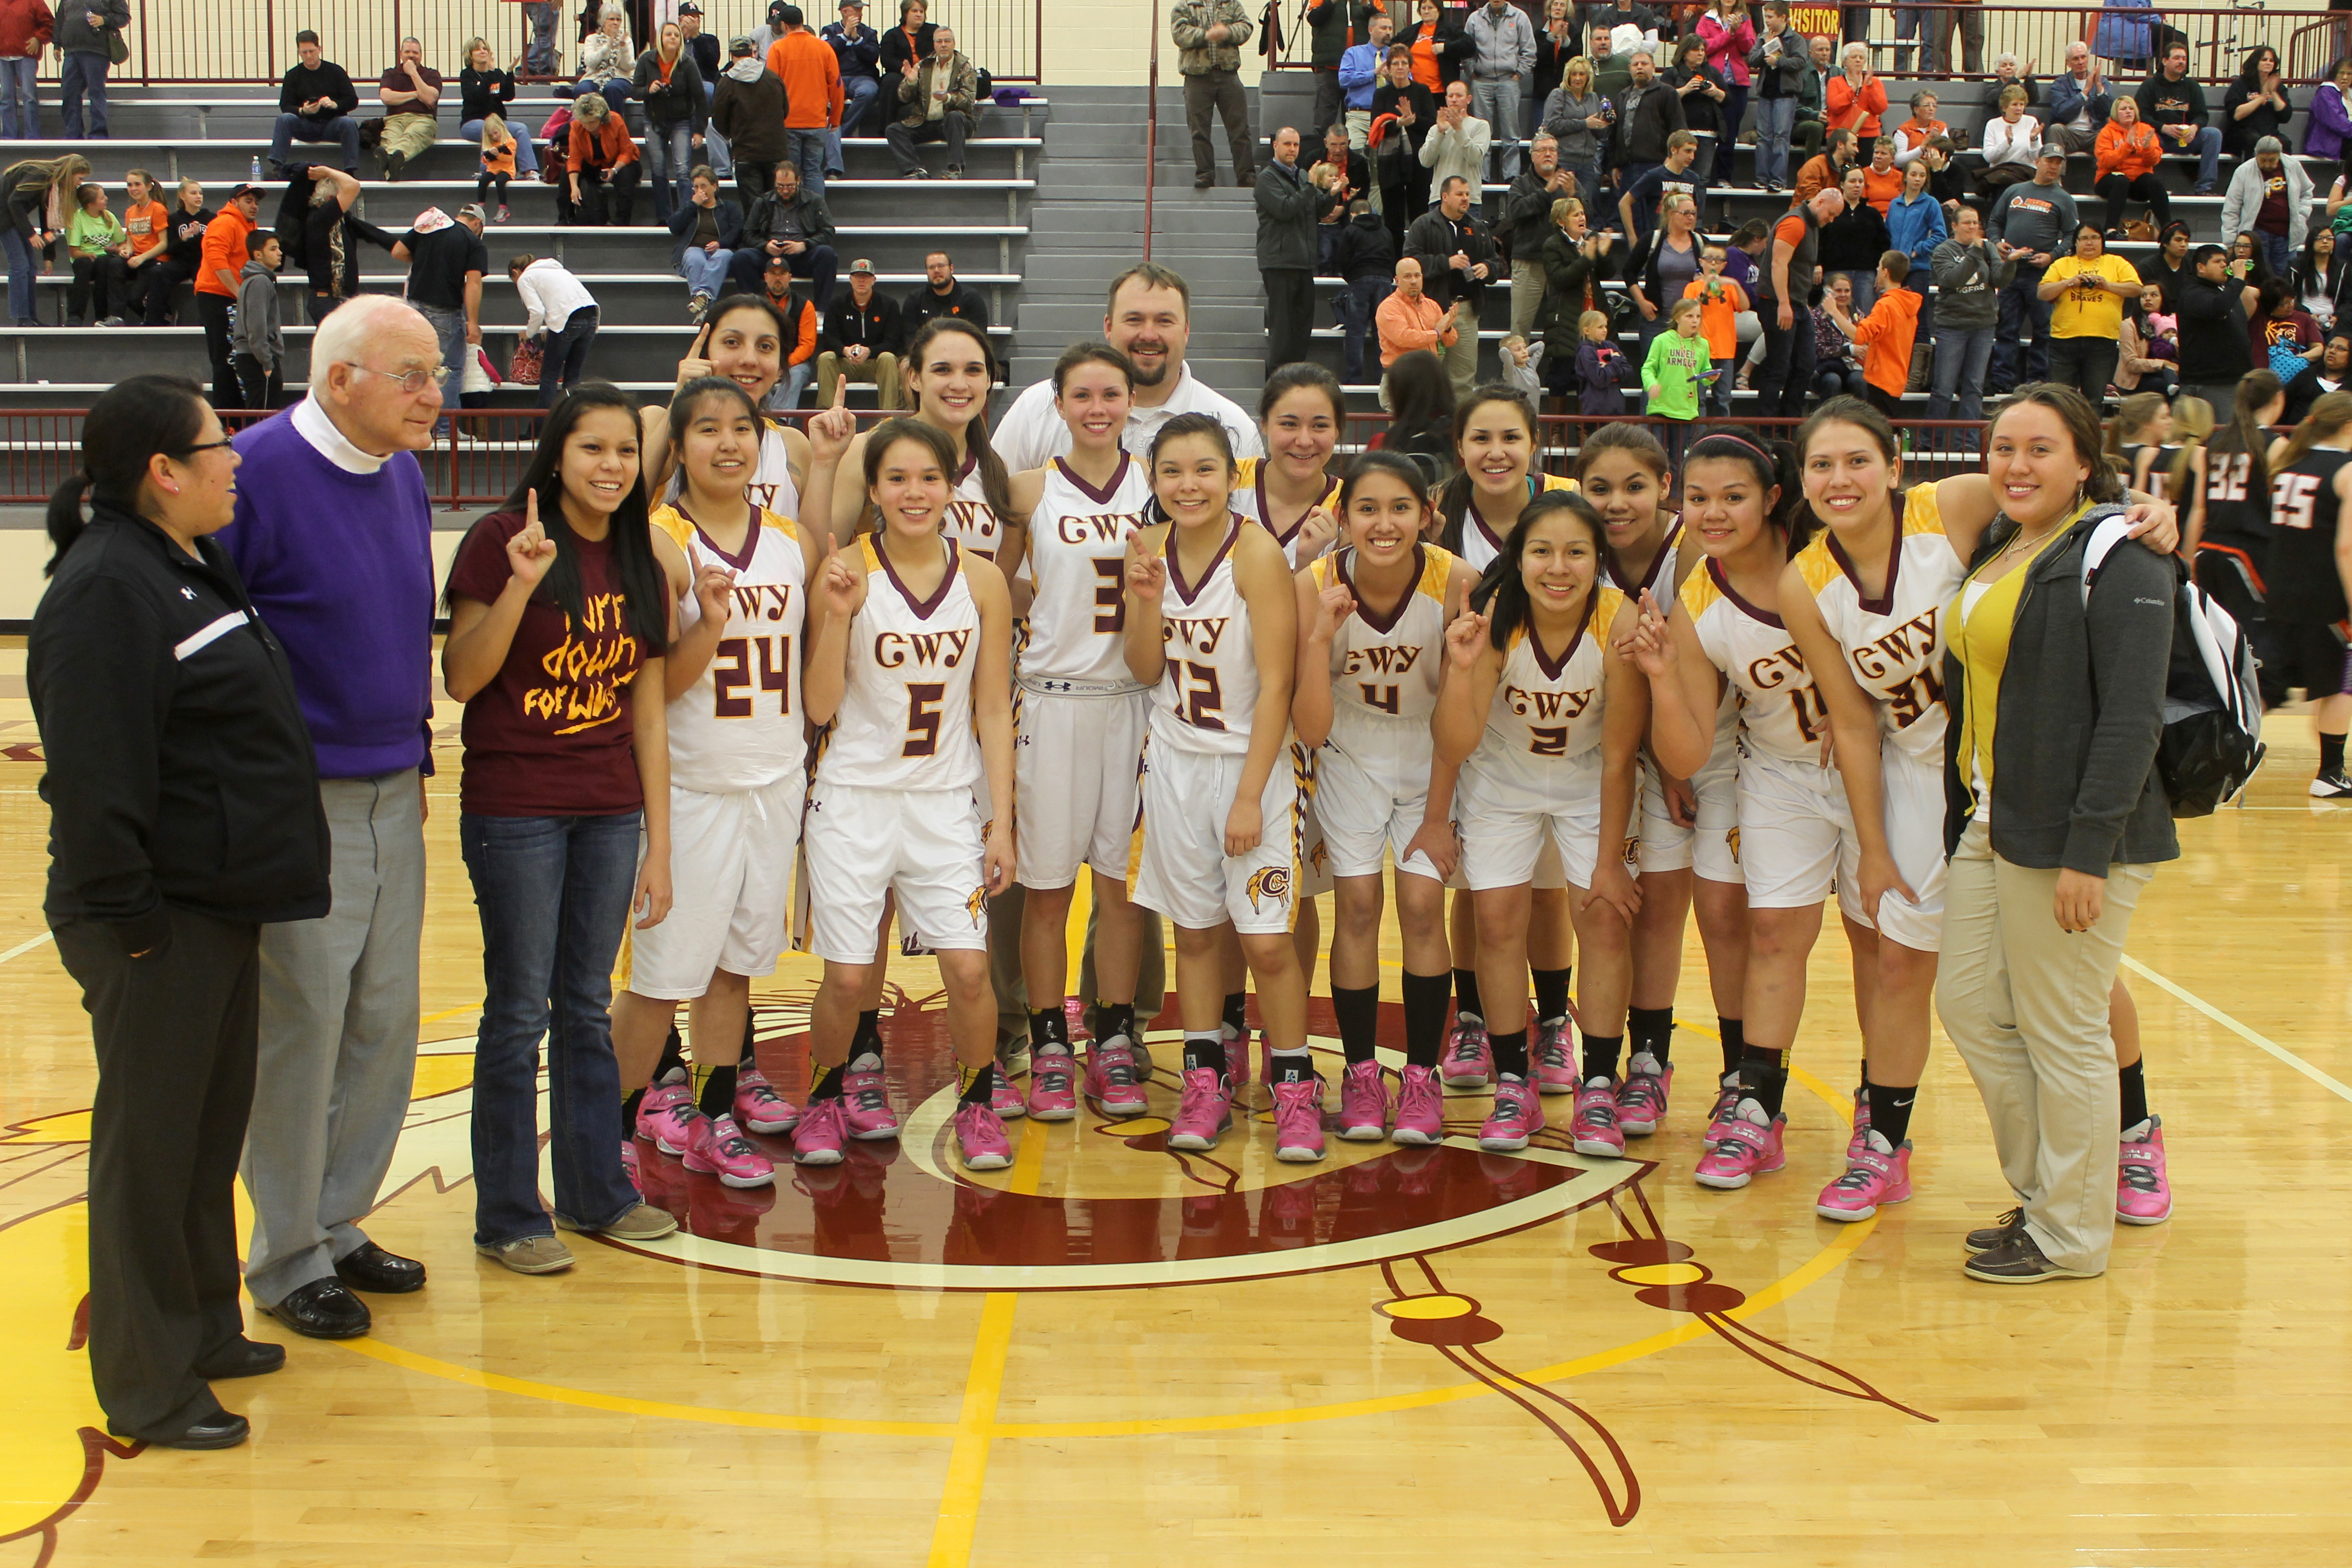 The Lady Braves won their fourth straight Sectional Championship by defeating the Rosman Lady Tigers 82-53 on Friday, Feb. 28 at the Charles George Arena.   (SCOTT MCKIE B.P./One Feather photos)